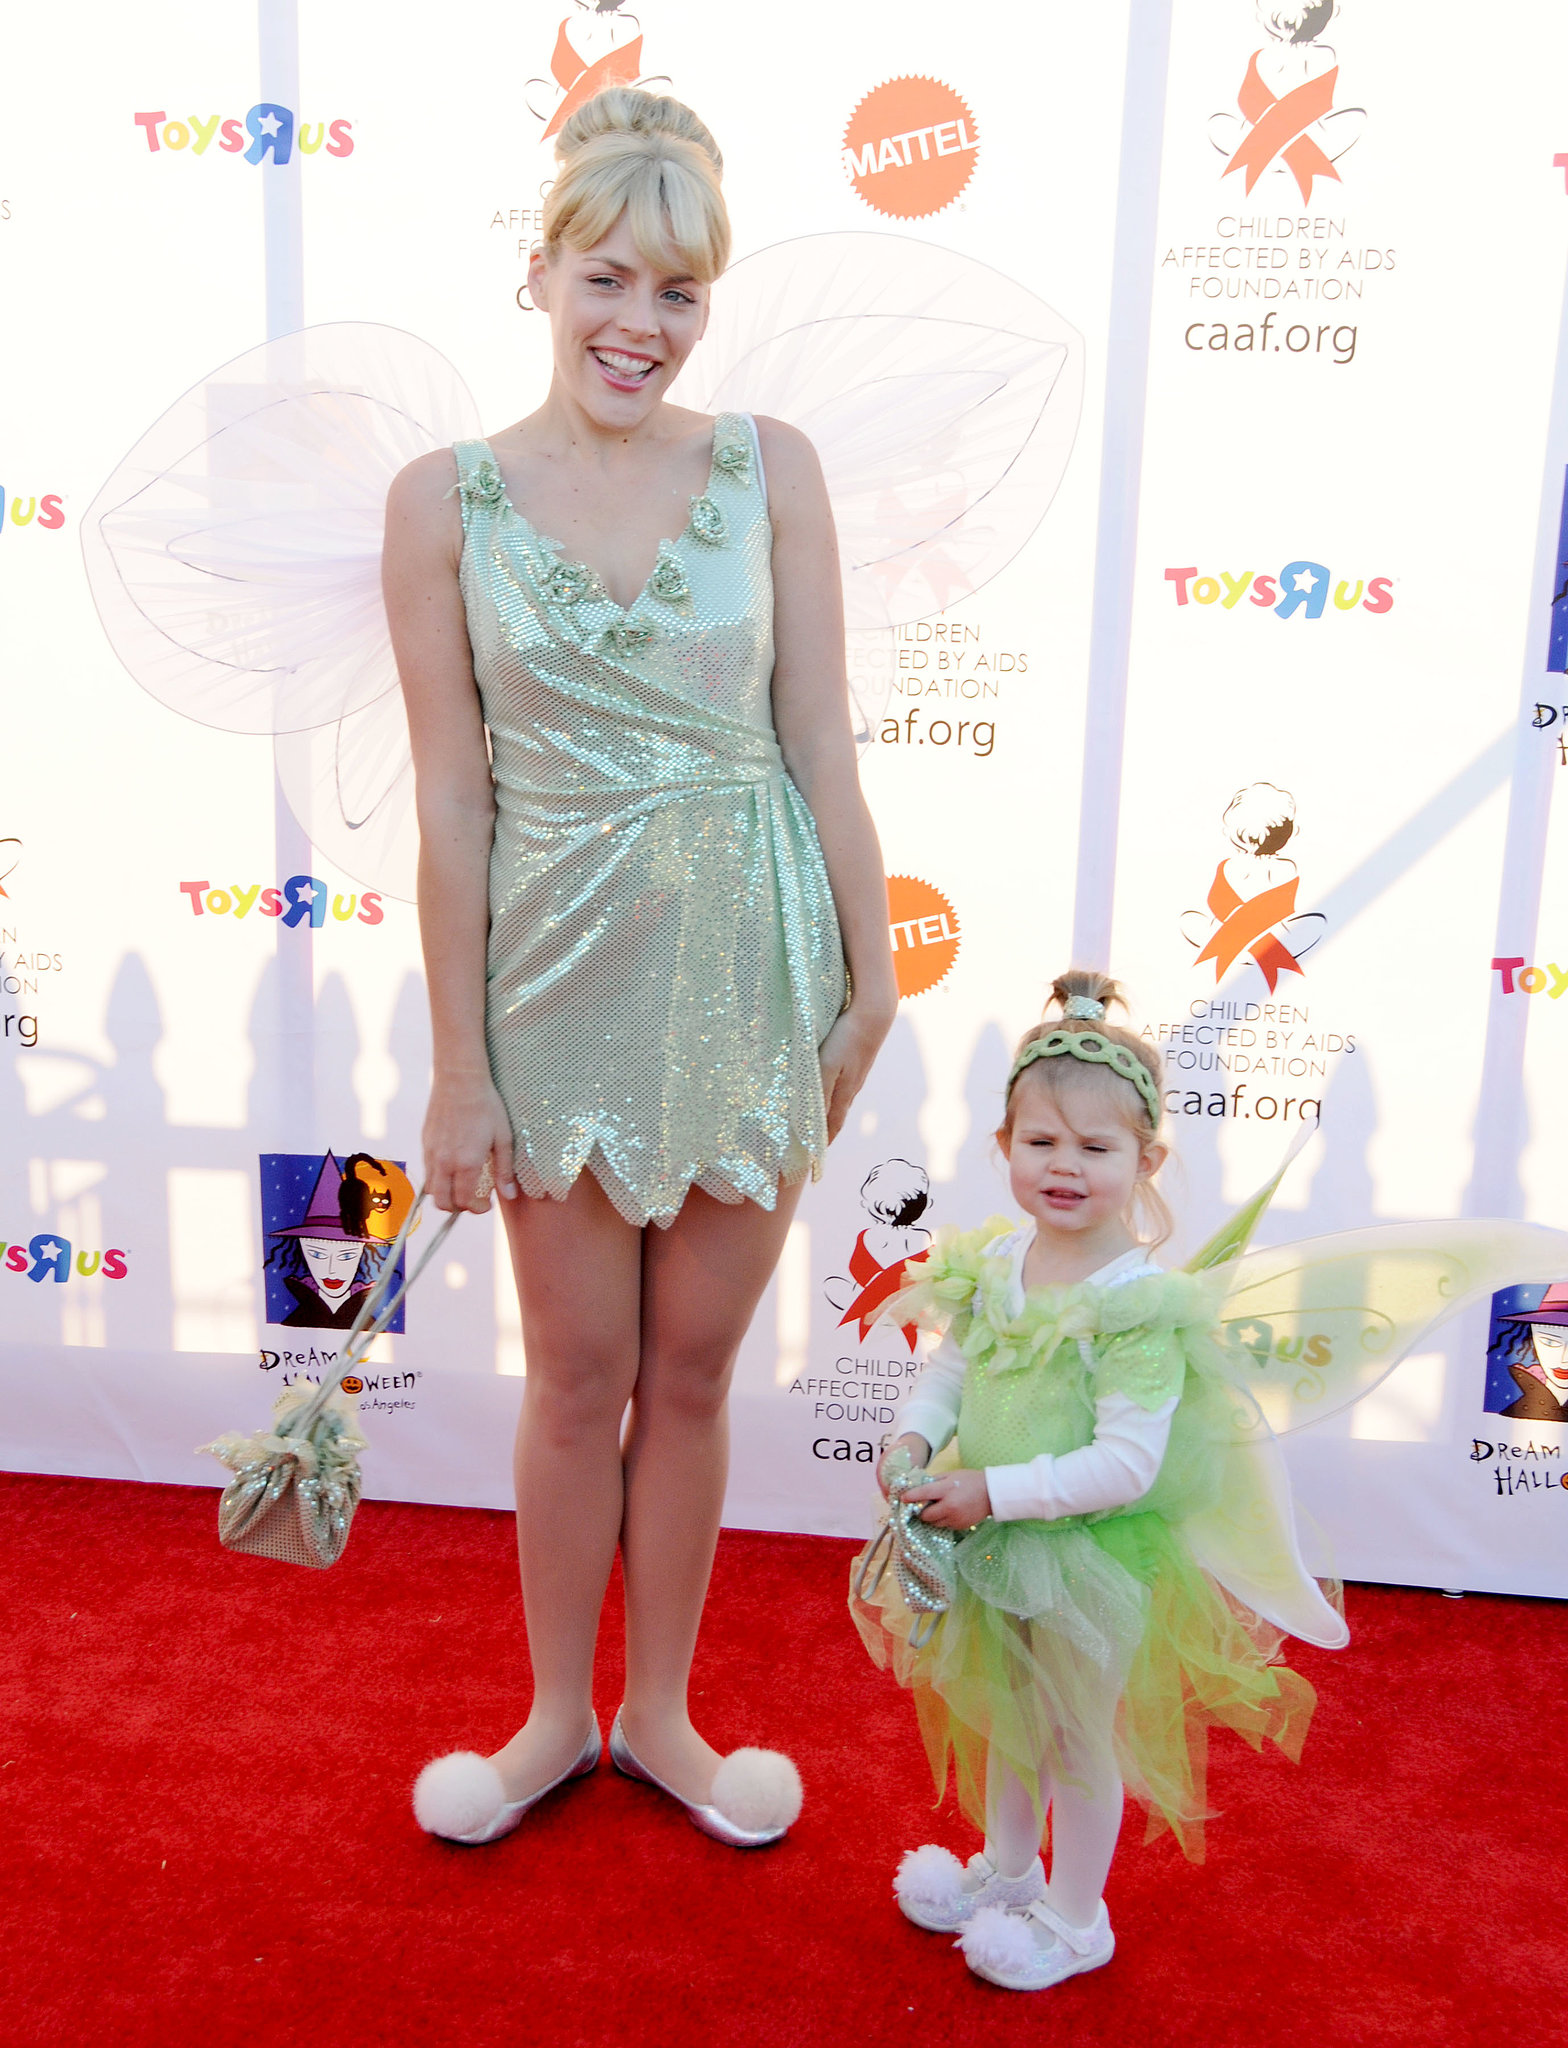 Busy Philipps Daughter Busy Philipps And Her Daughter